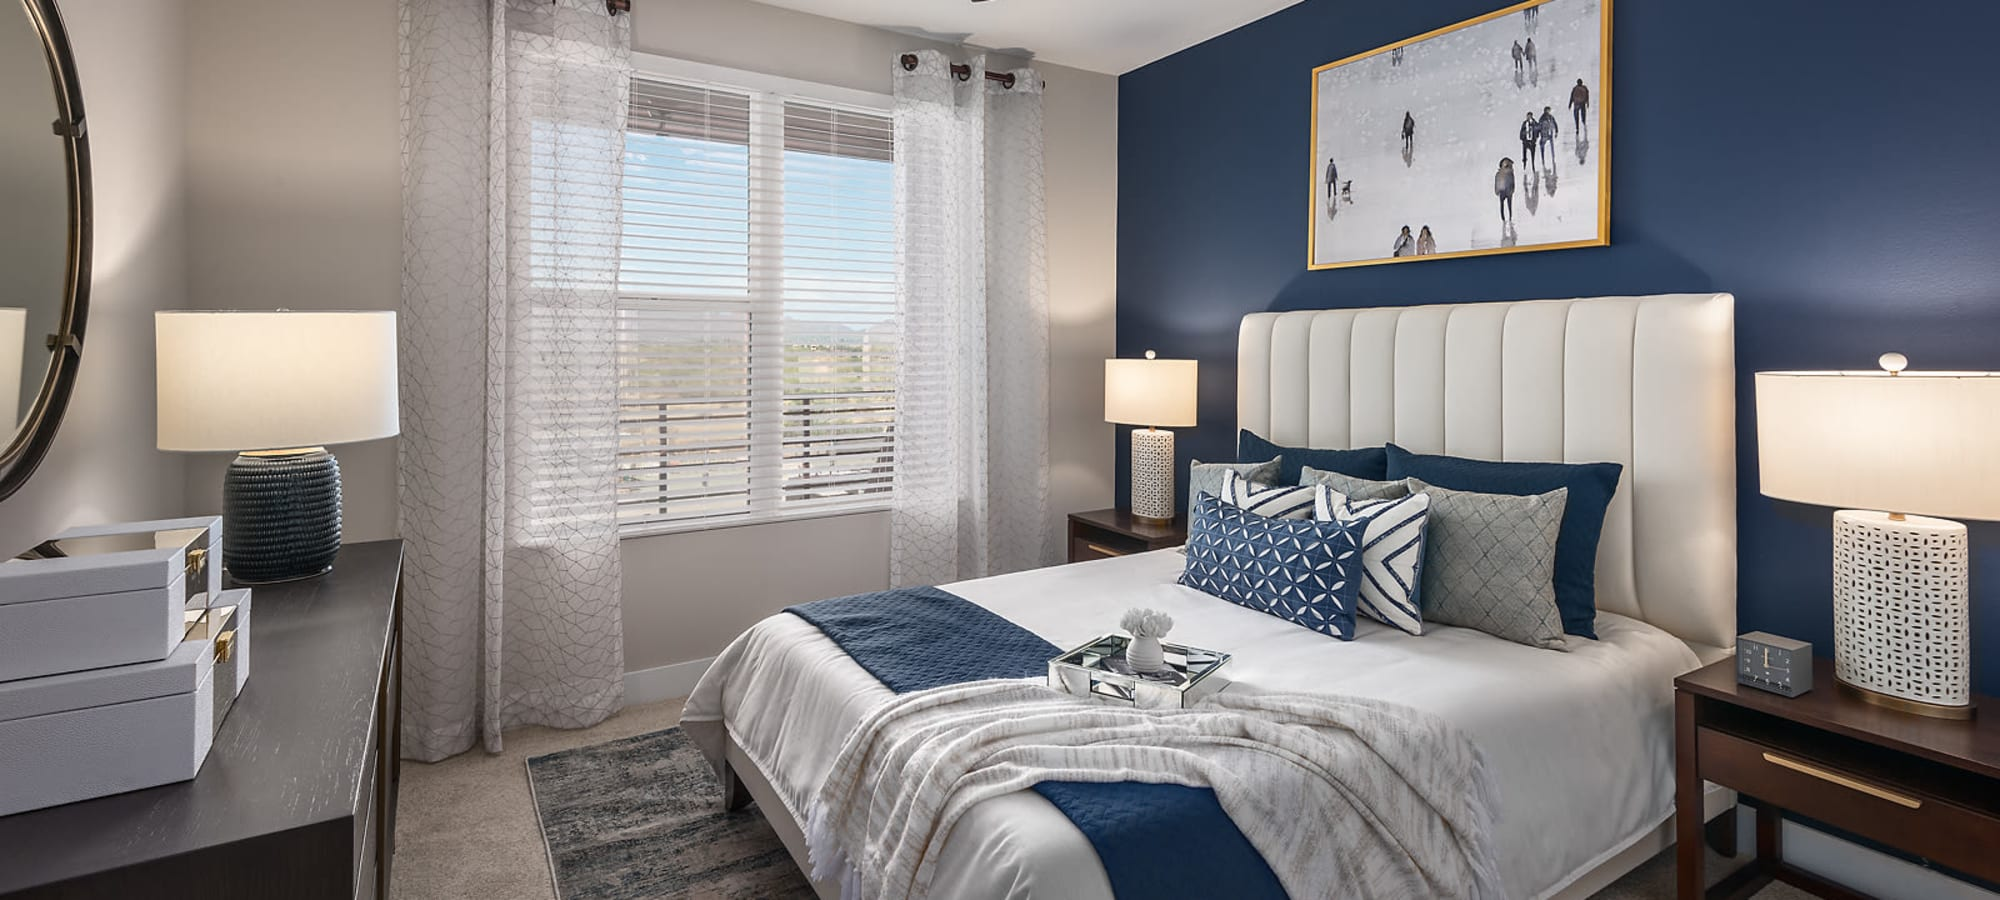 Bright master bedroom at The Halsten at Chauncey Lane in Scottsdale, Arizona